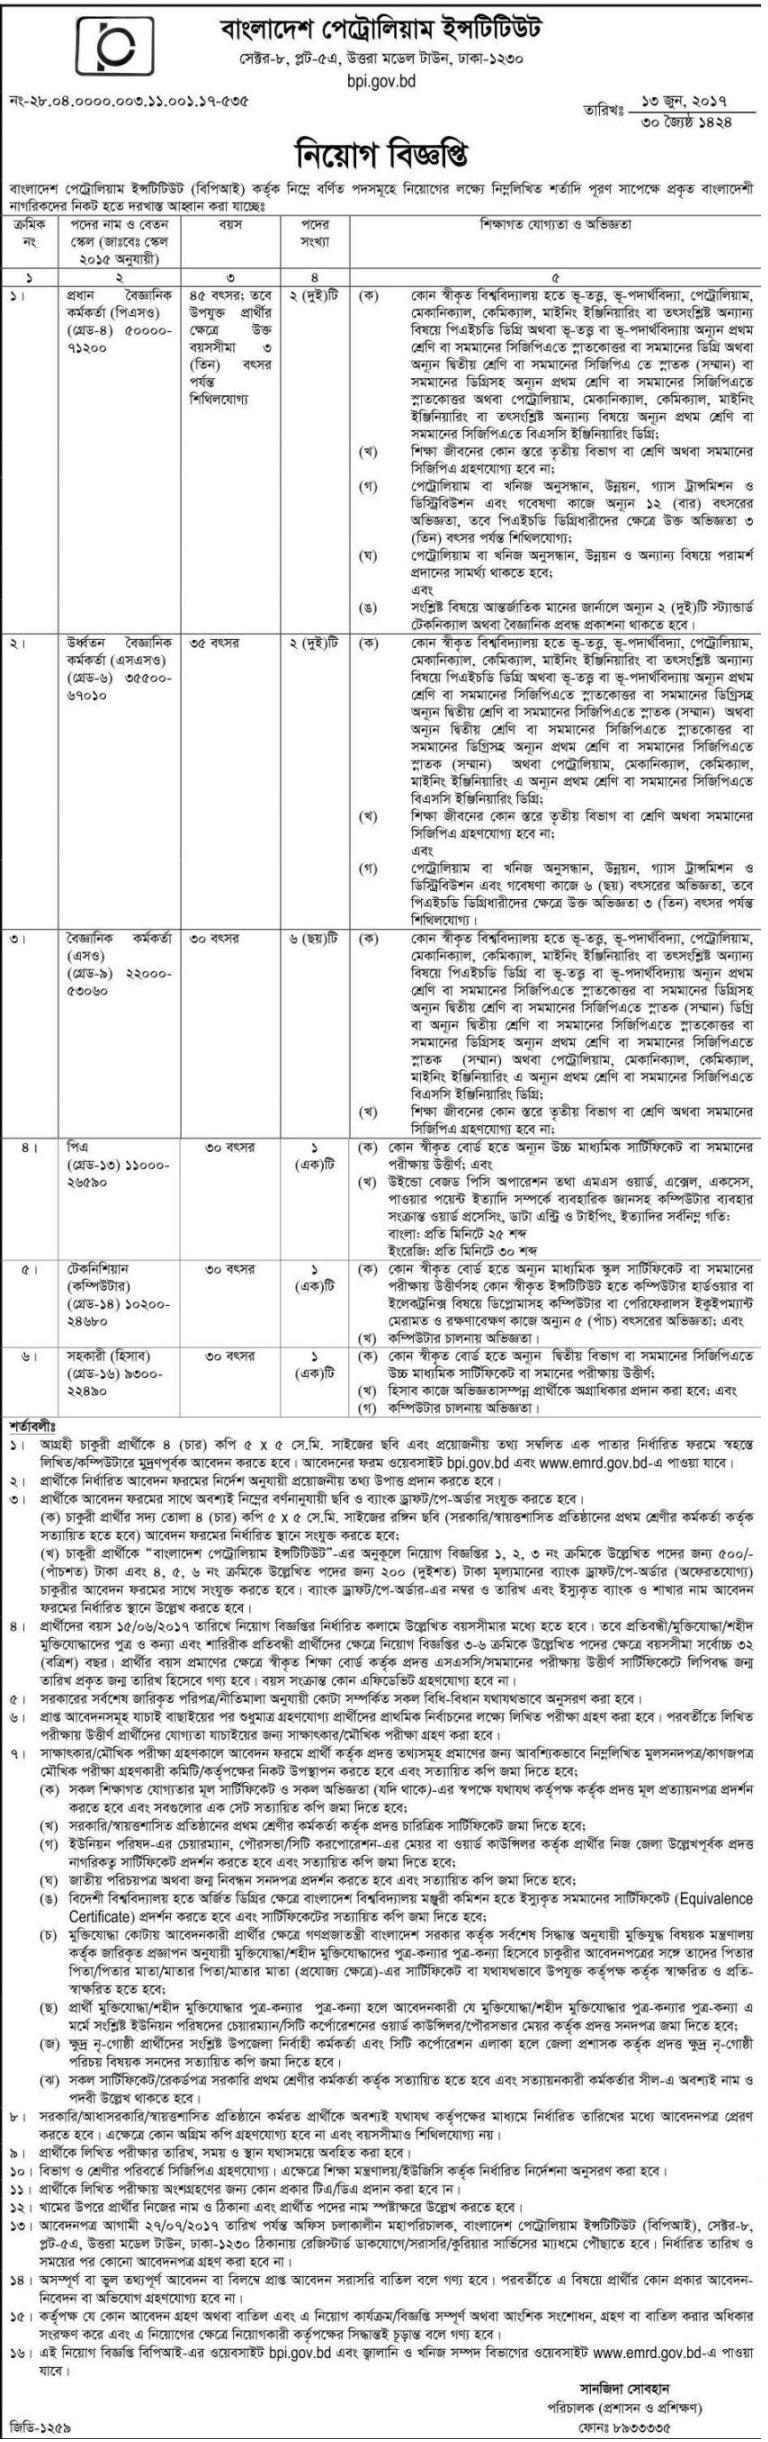 See Bangladesh Petroleum Corporation Job Circular 2017